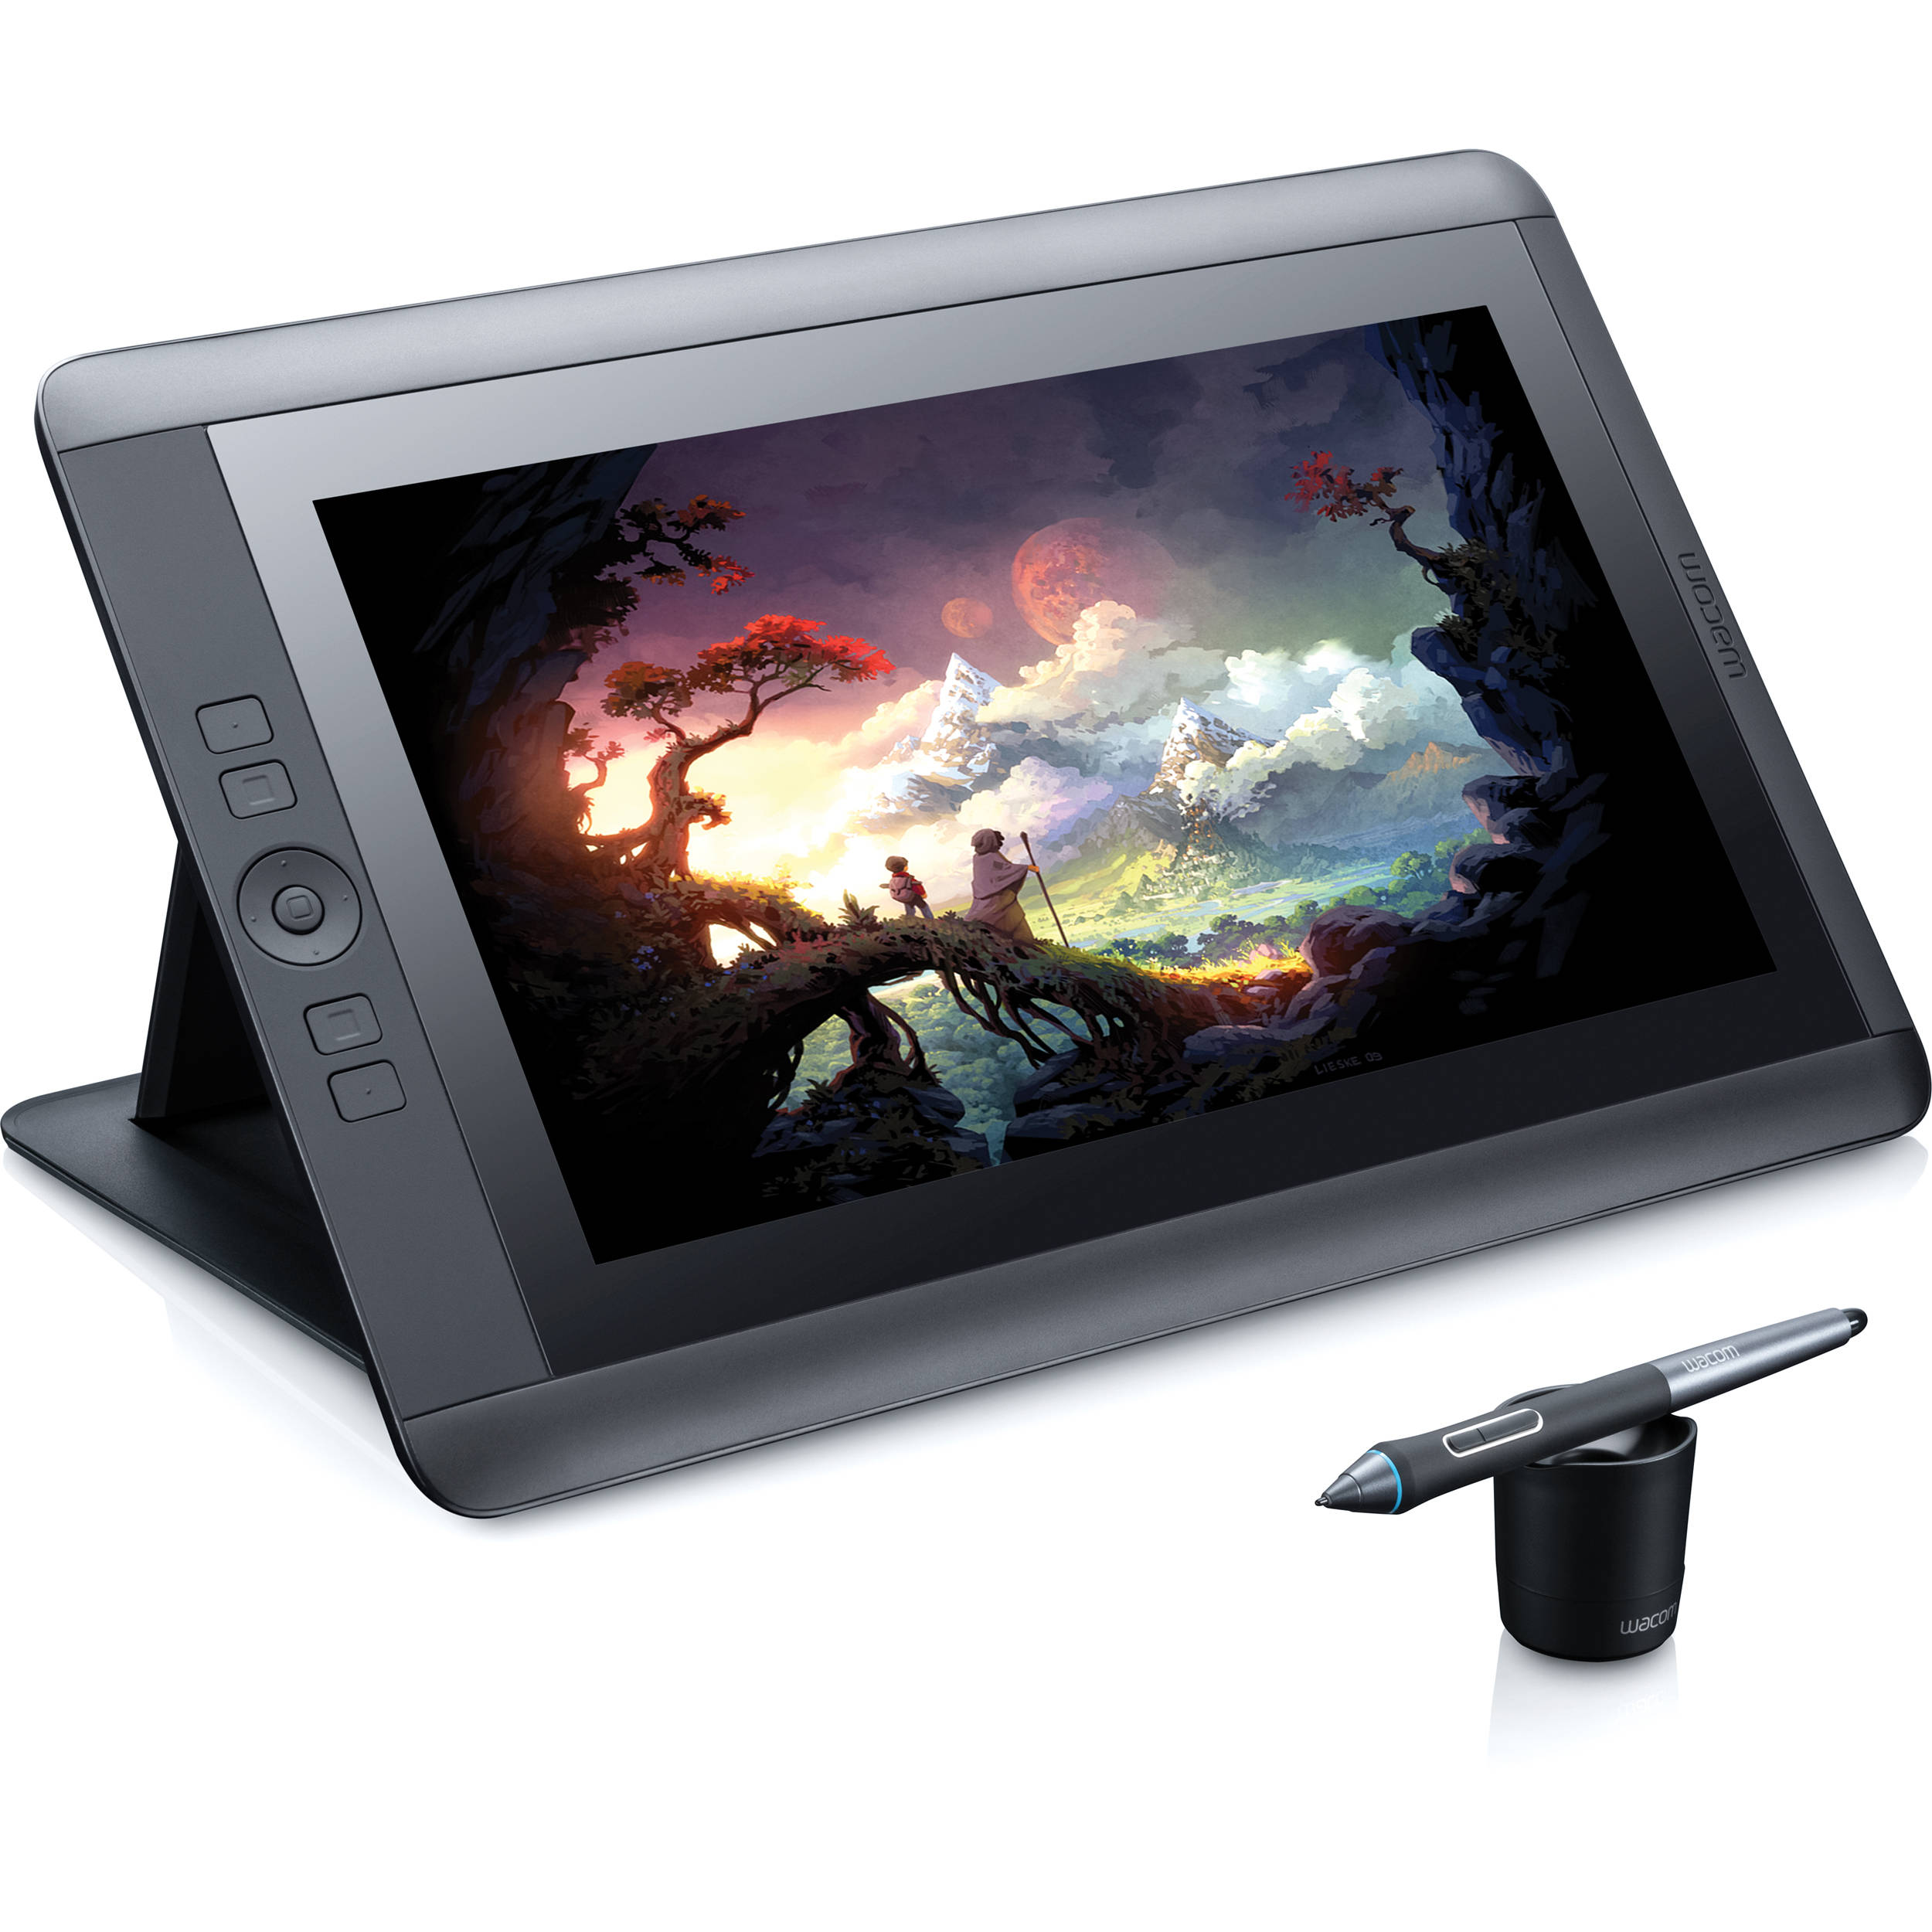 Wacom Cintiq 13HD Interactive Pen Display with Tilt Sensitive Wacom Pro Pen